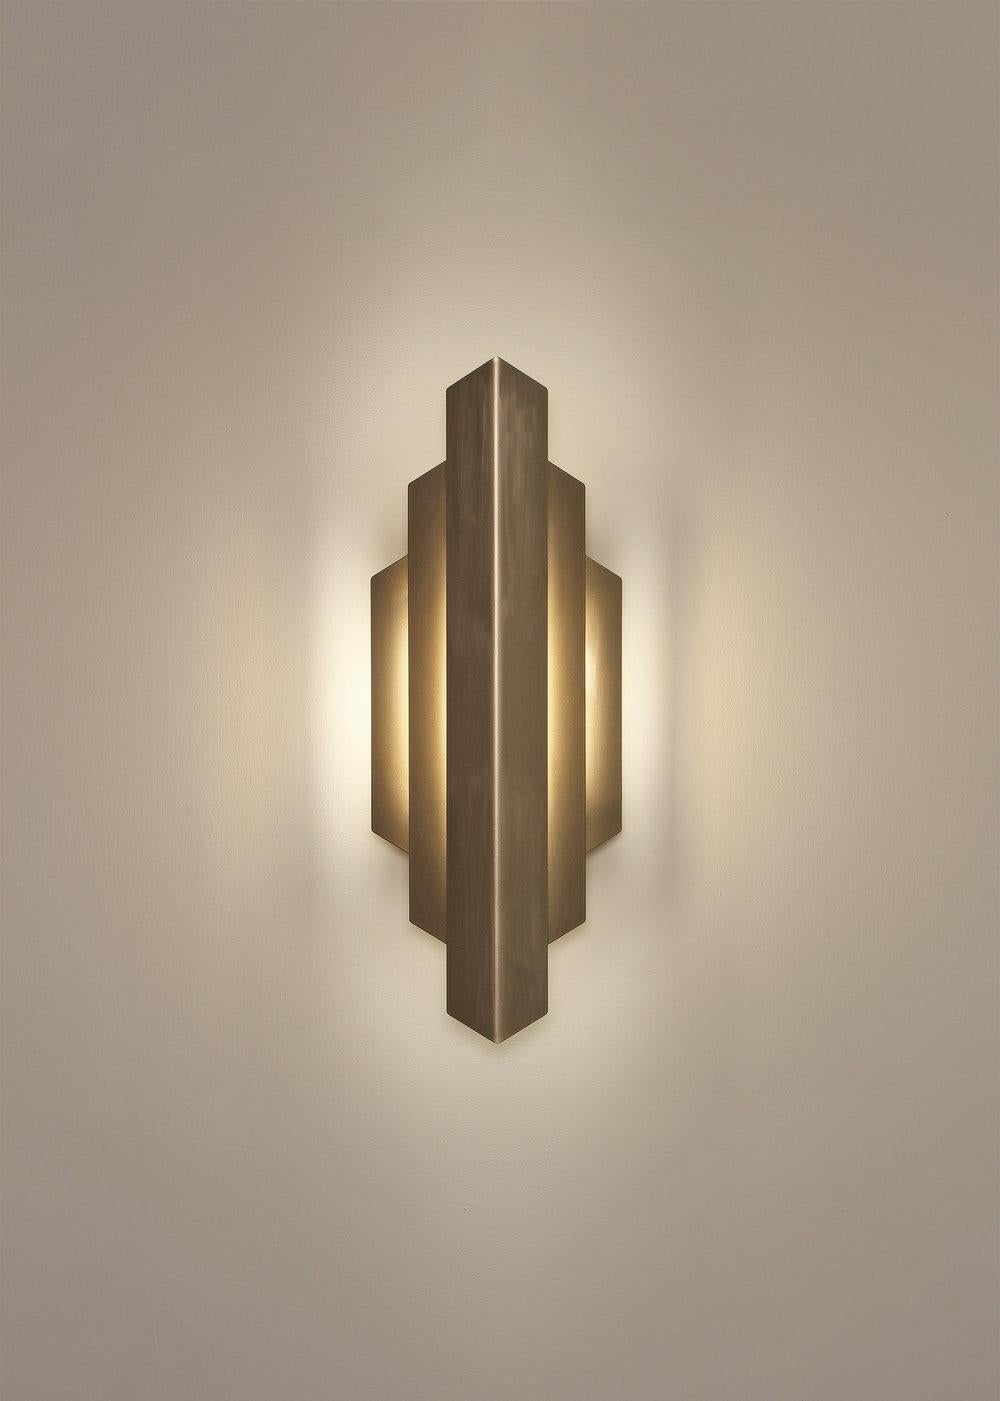 Deco Sconce, Gold Vertical Geometric Modern LED Sconce Light Fixture